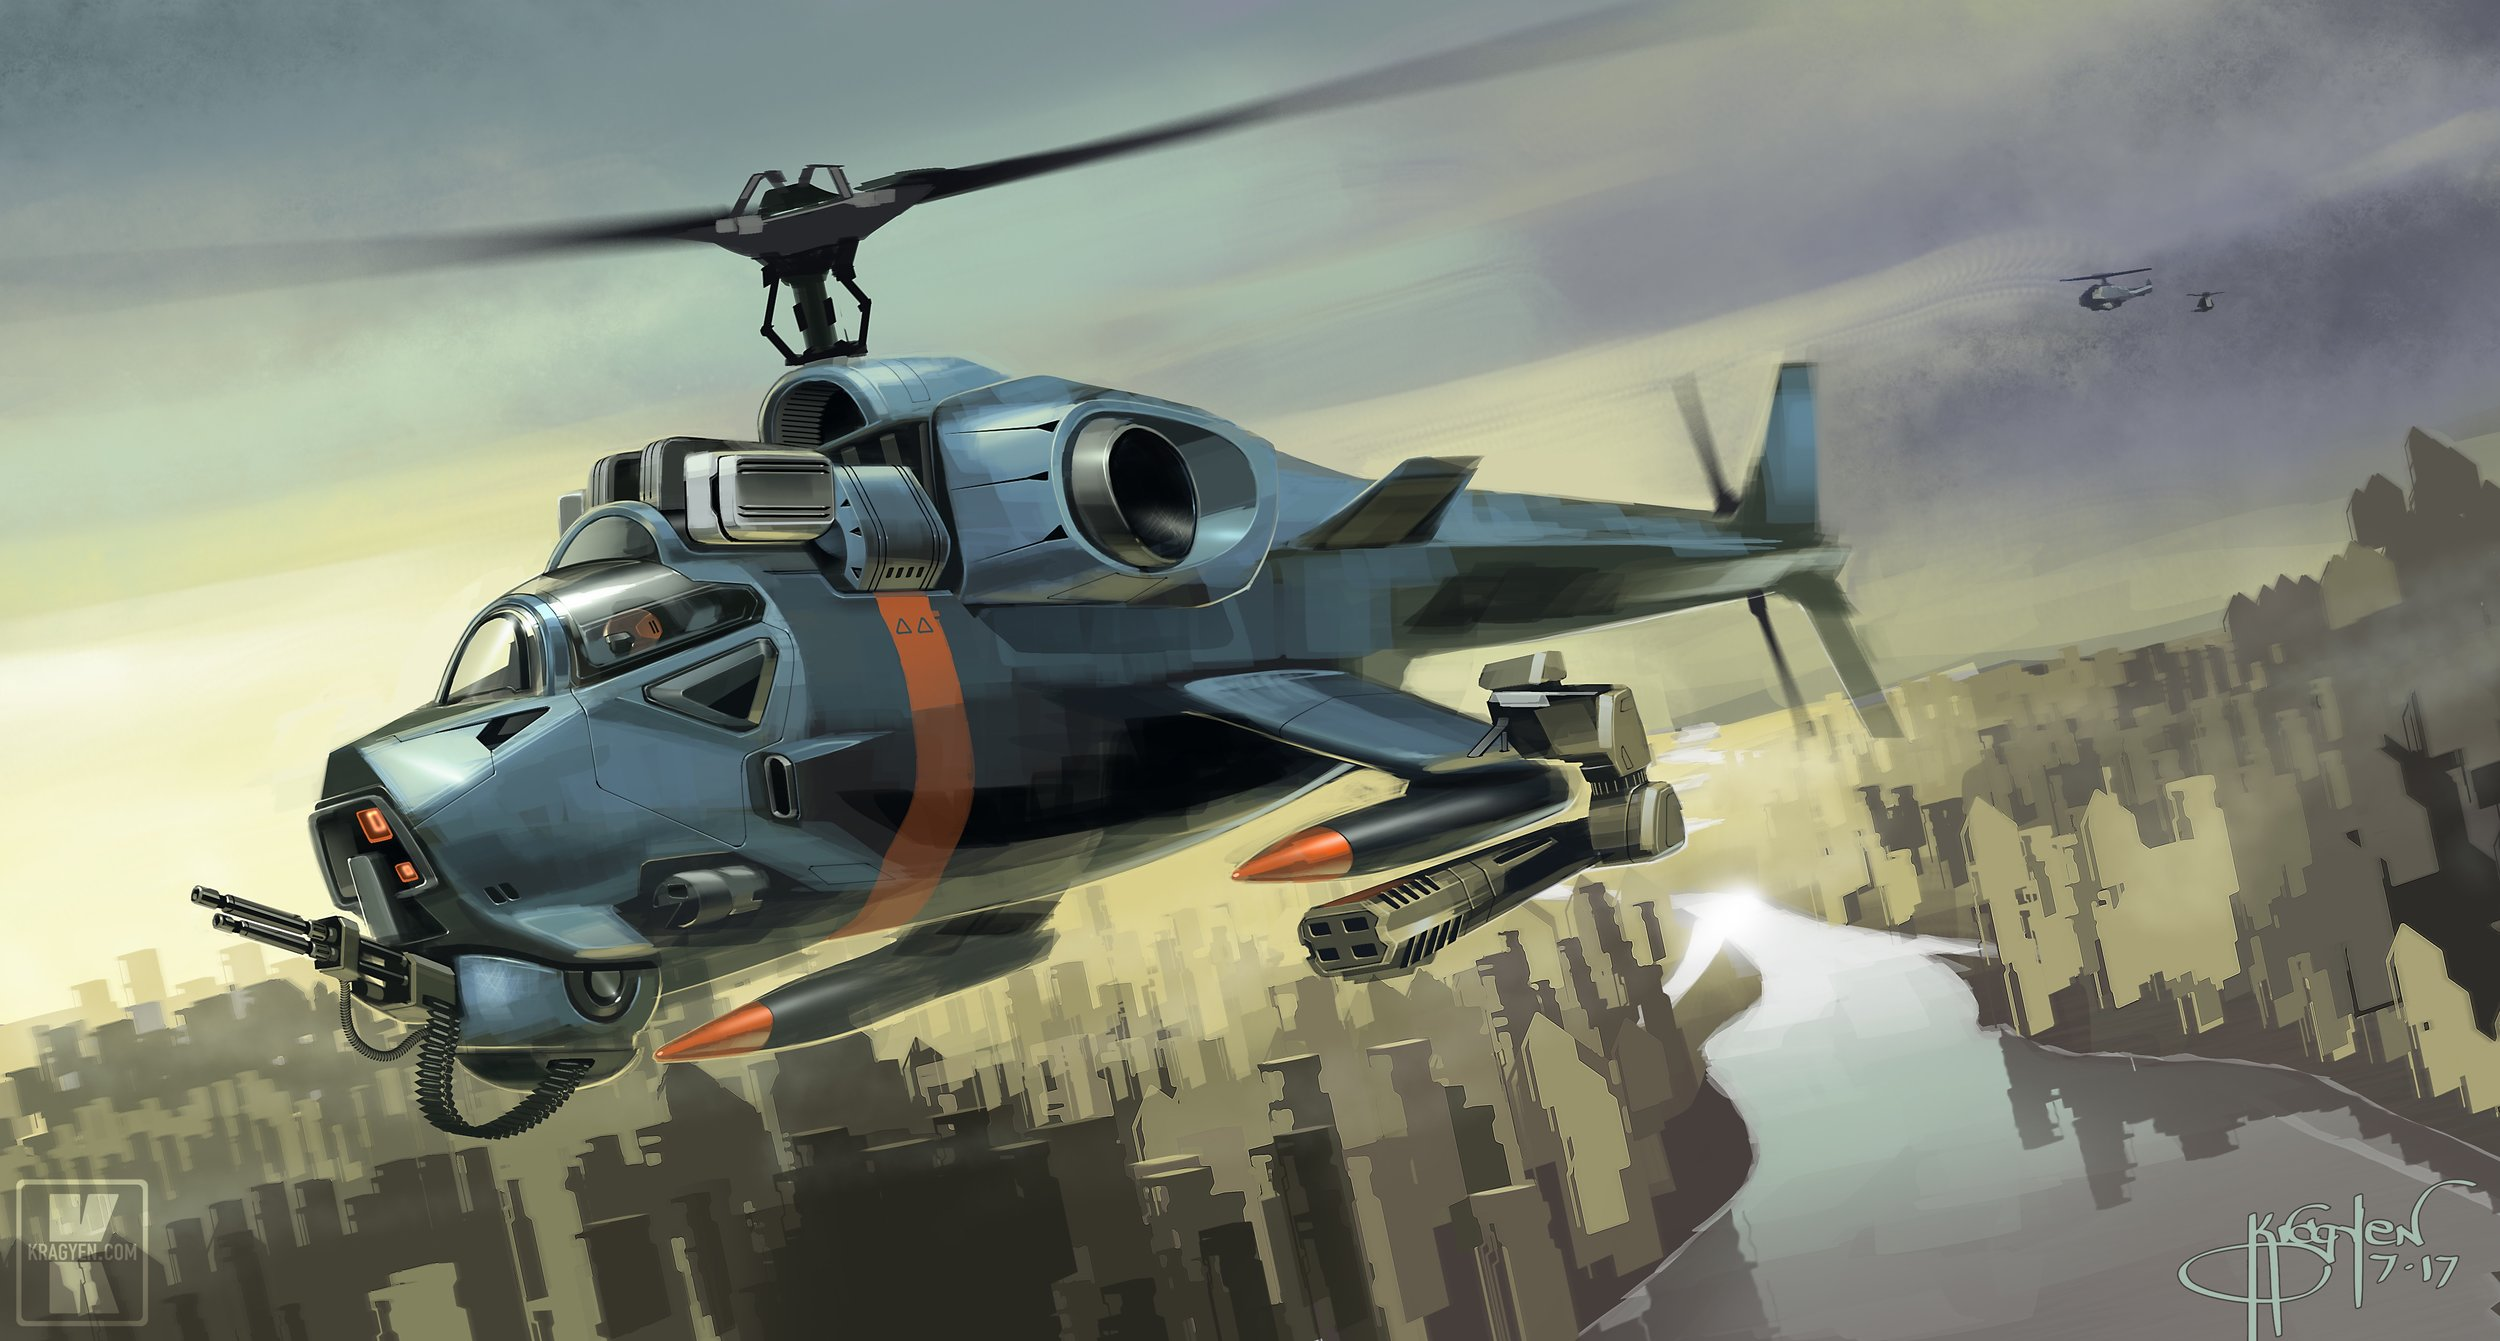 AttackHelicopter2x.jpg